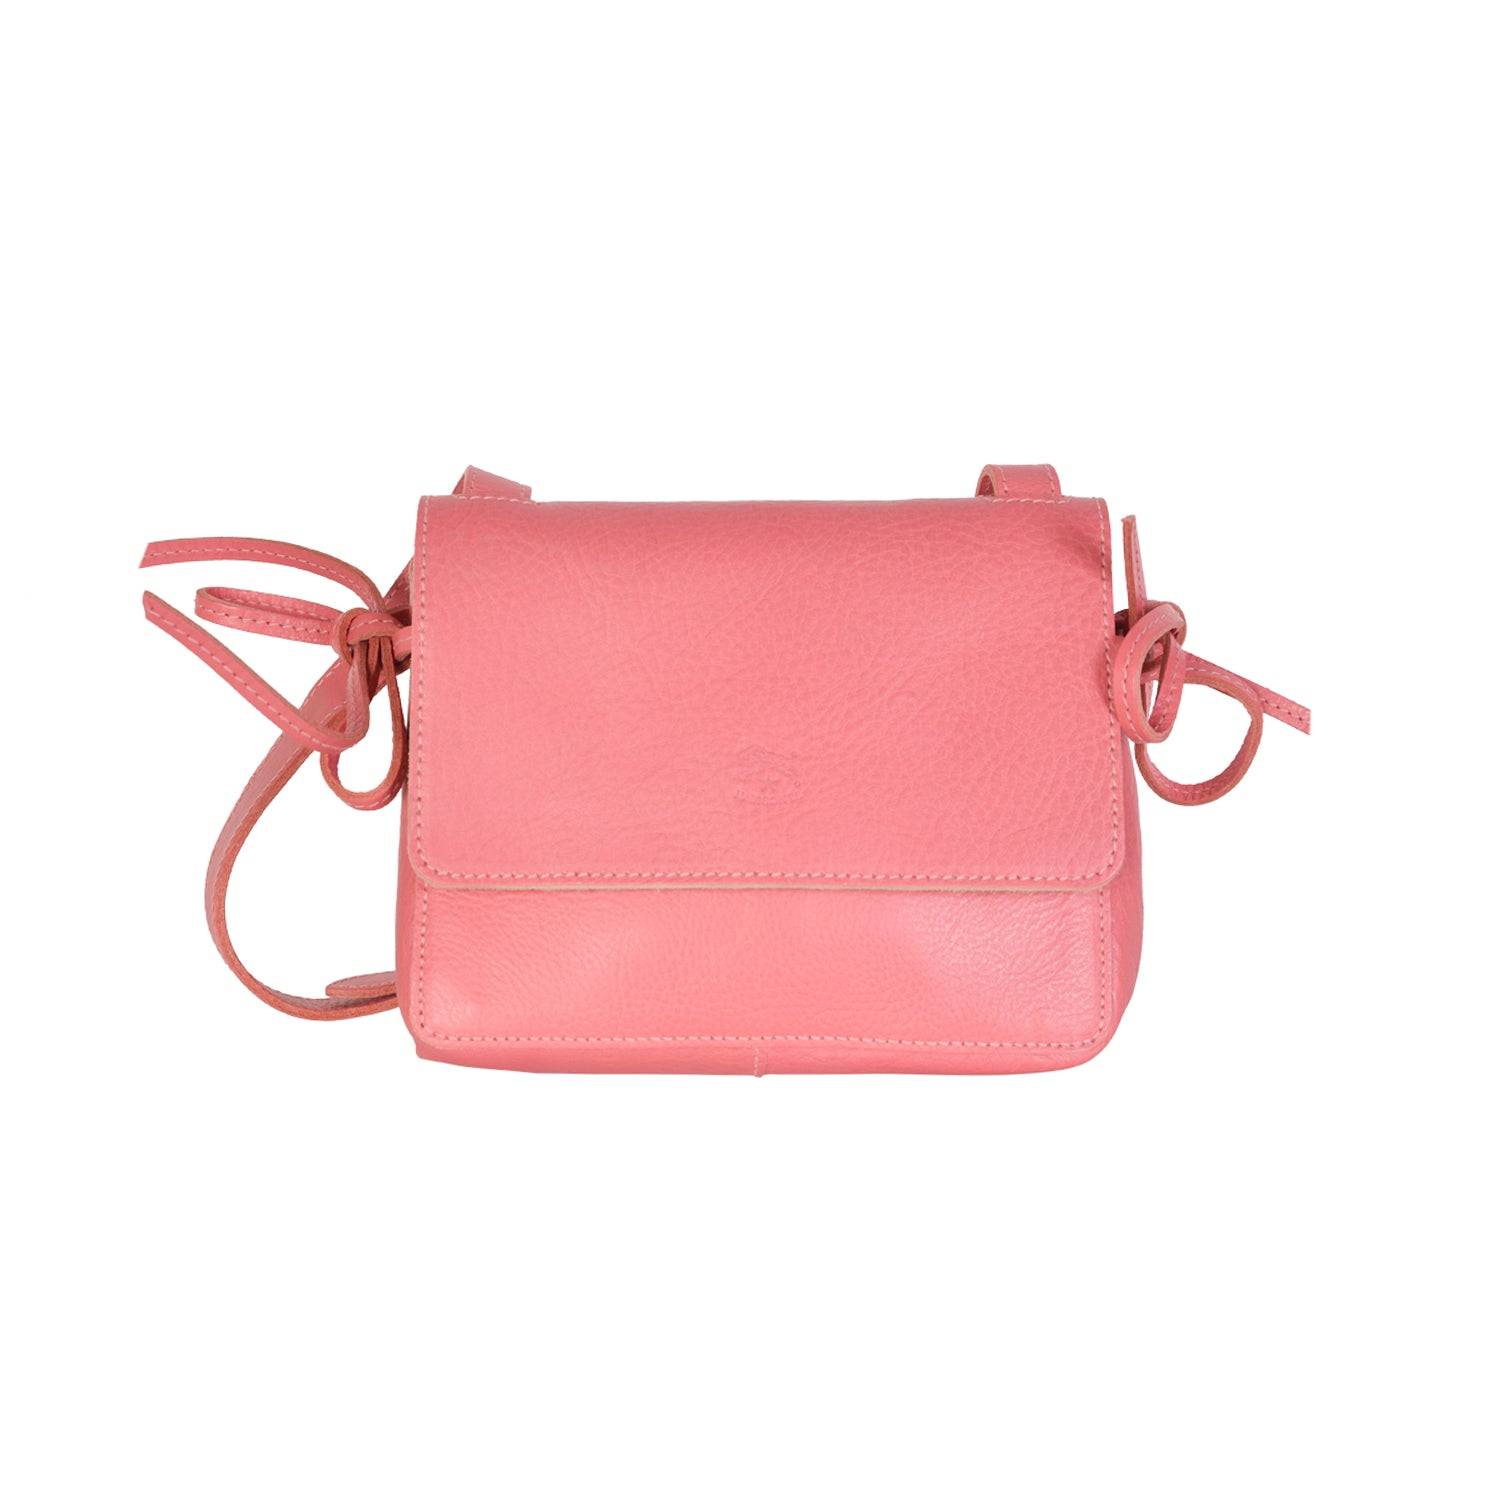 NEW IL BISONTE WOMAN'S SOFFIETTO COLLECTION CROSSBODY BAG IN PINK LEATHER